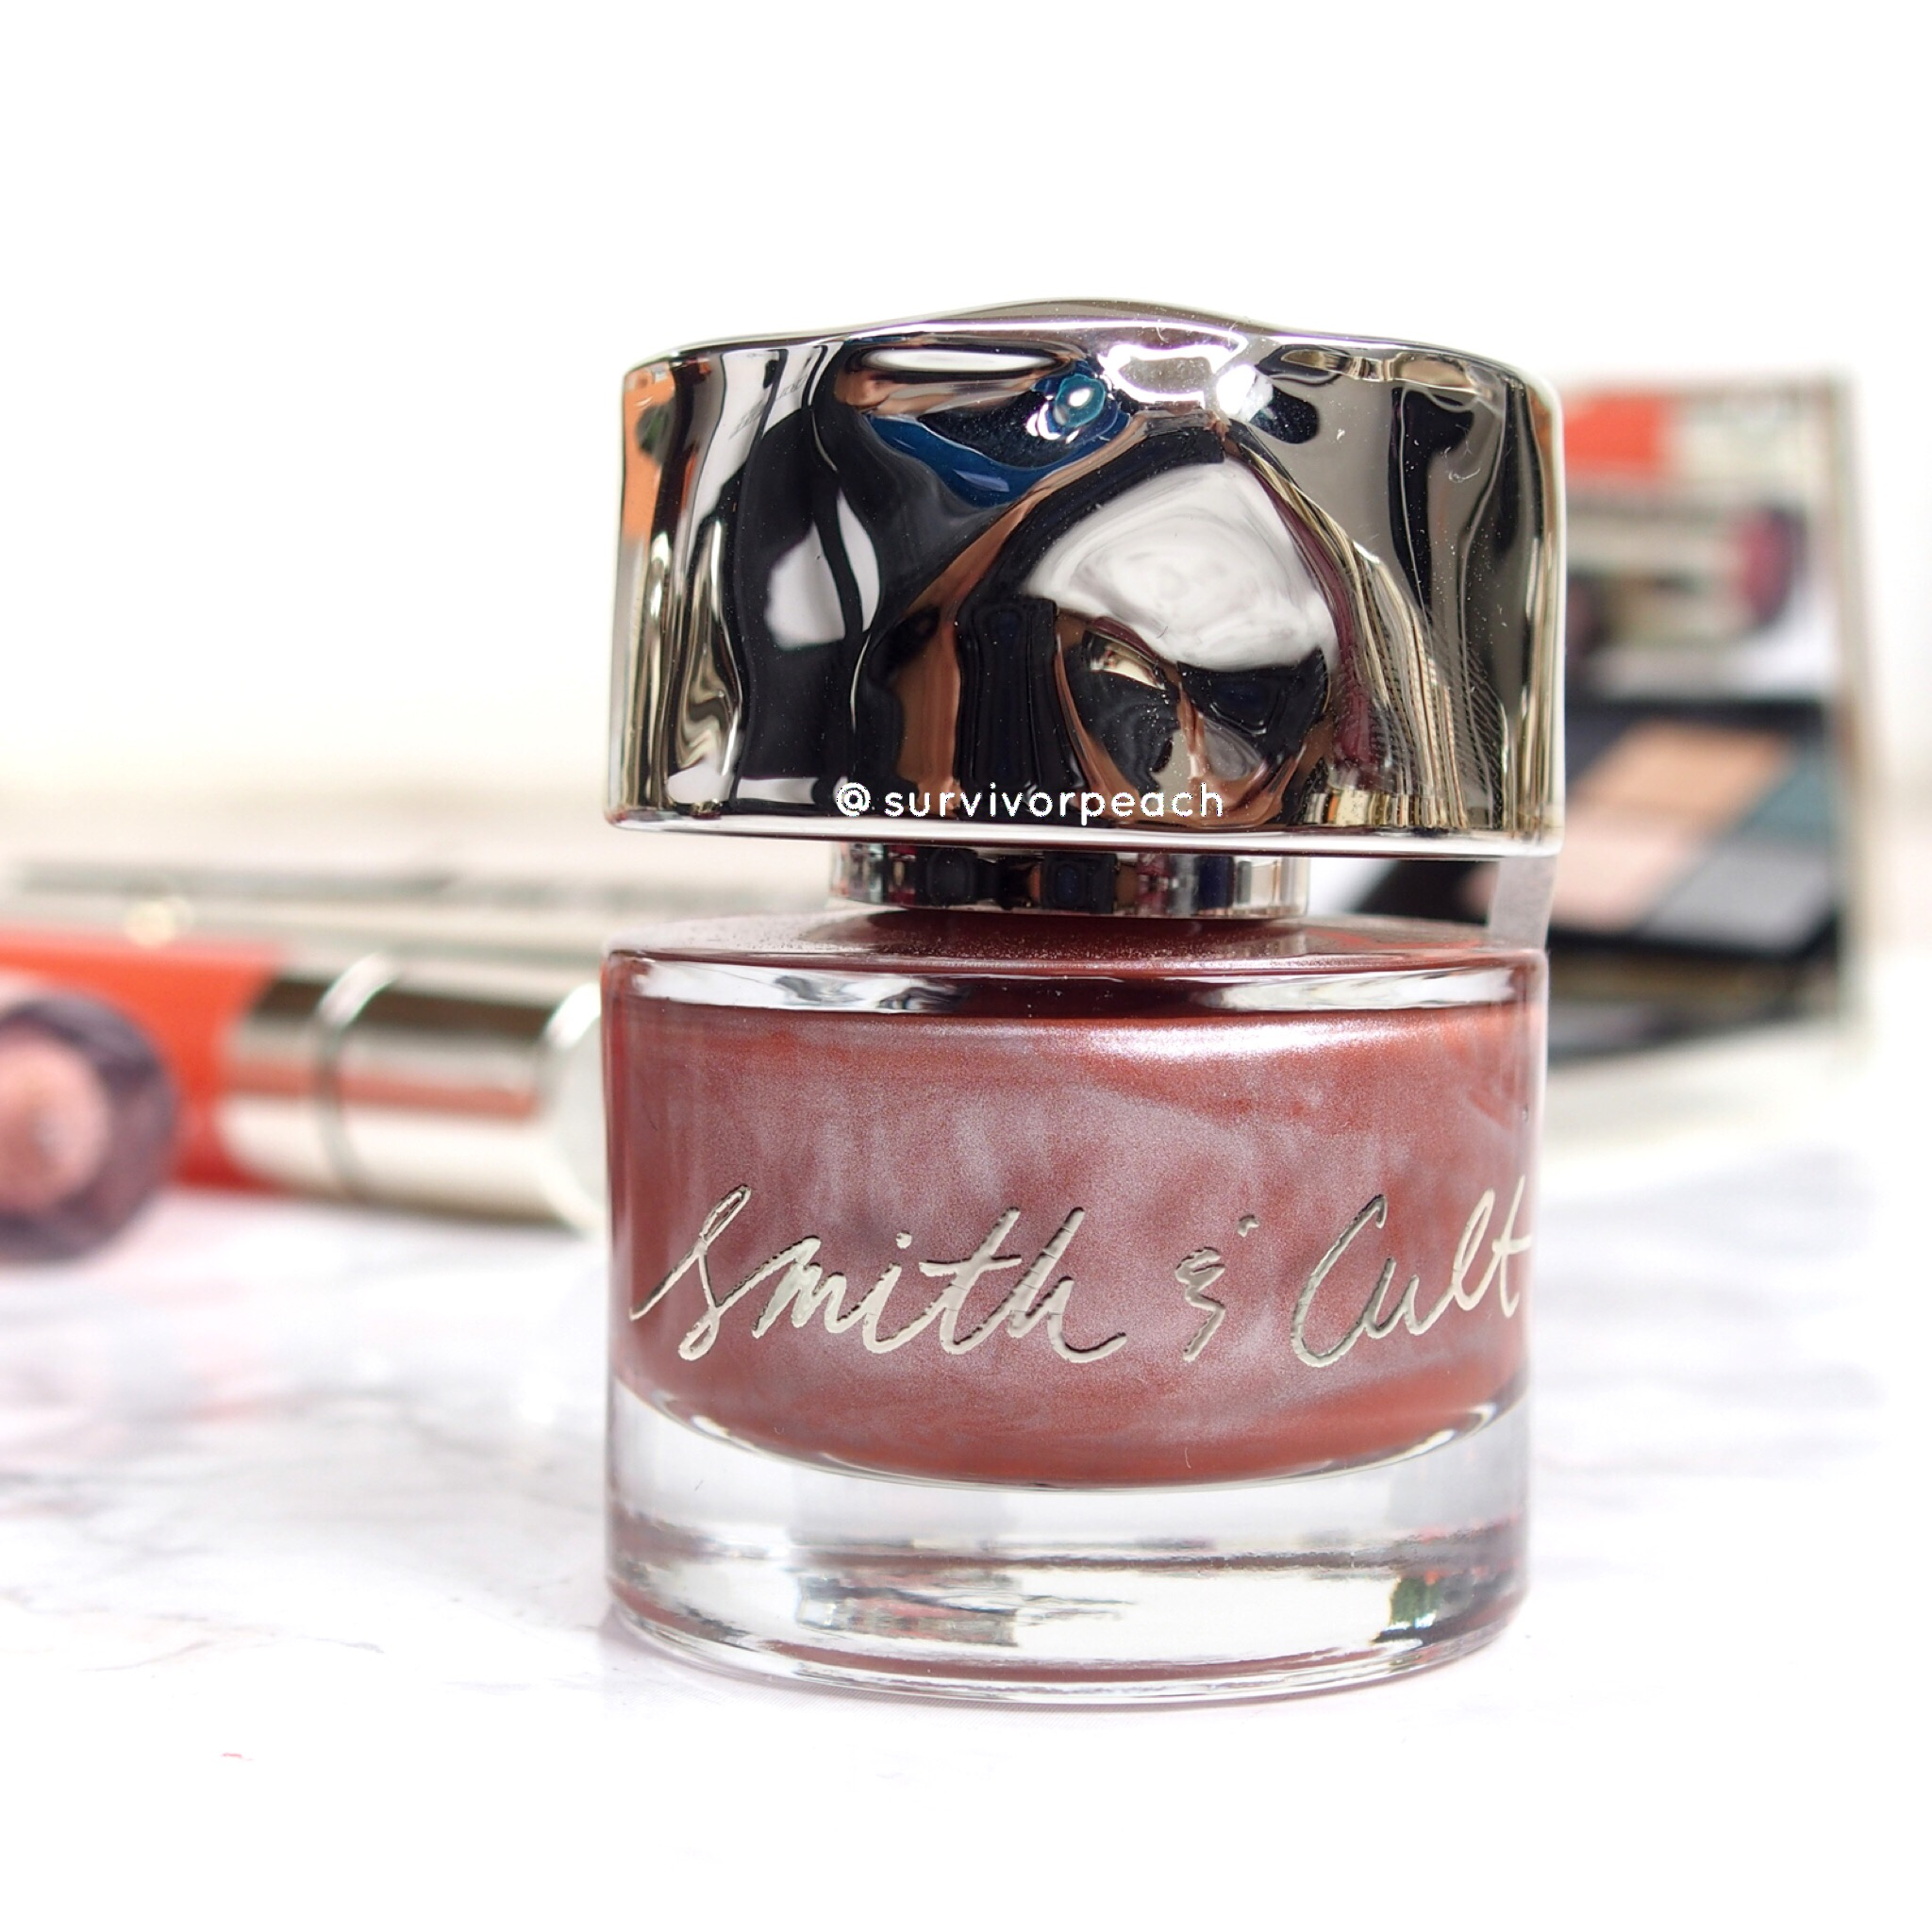 Smith & Cult Nail Polish in Fosse Fingers